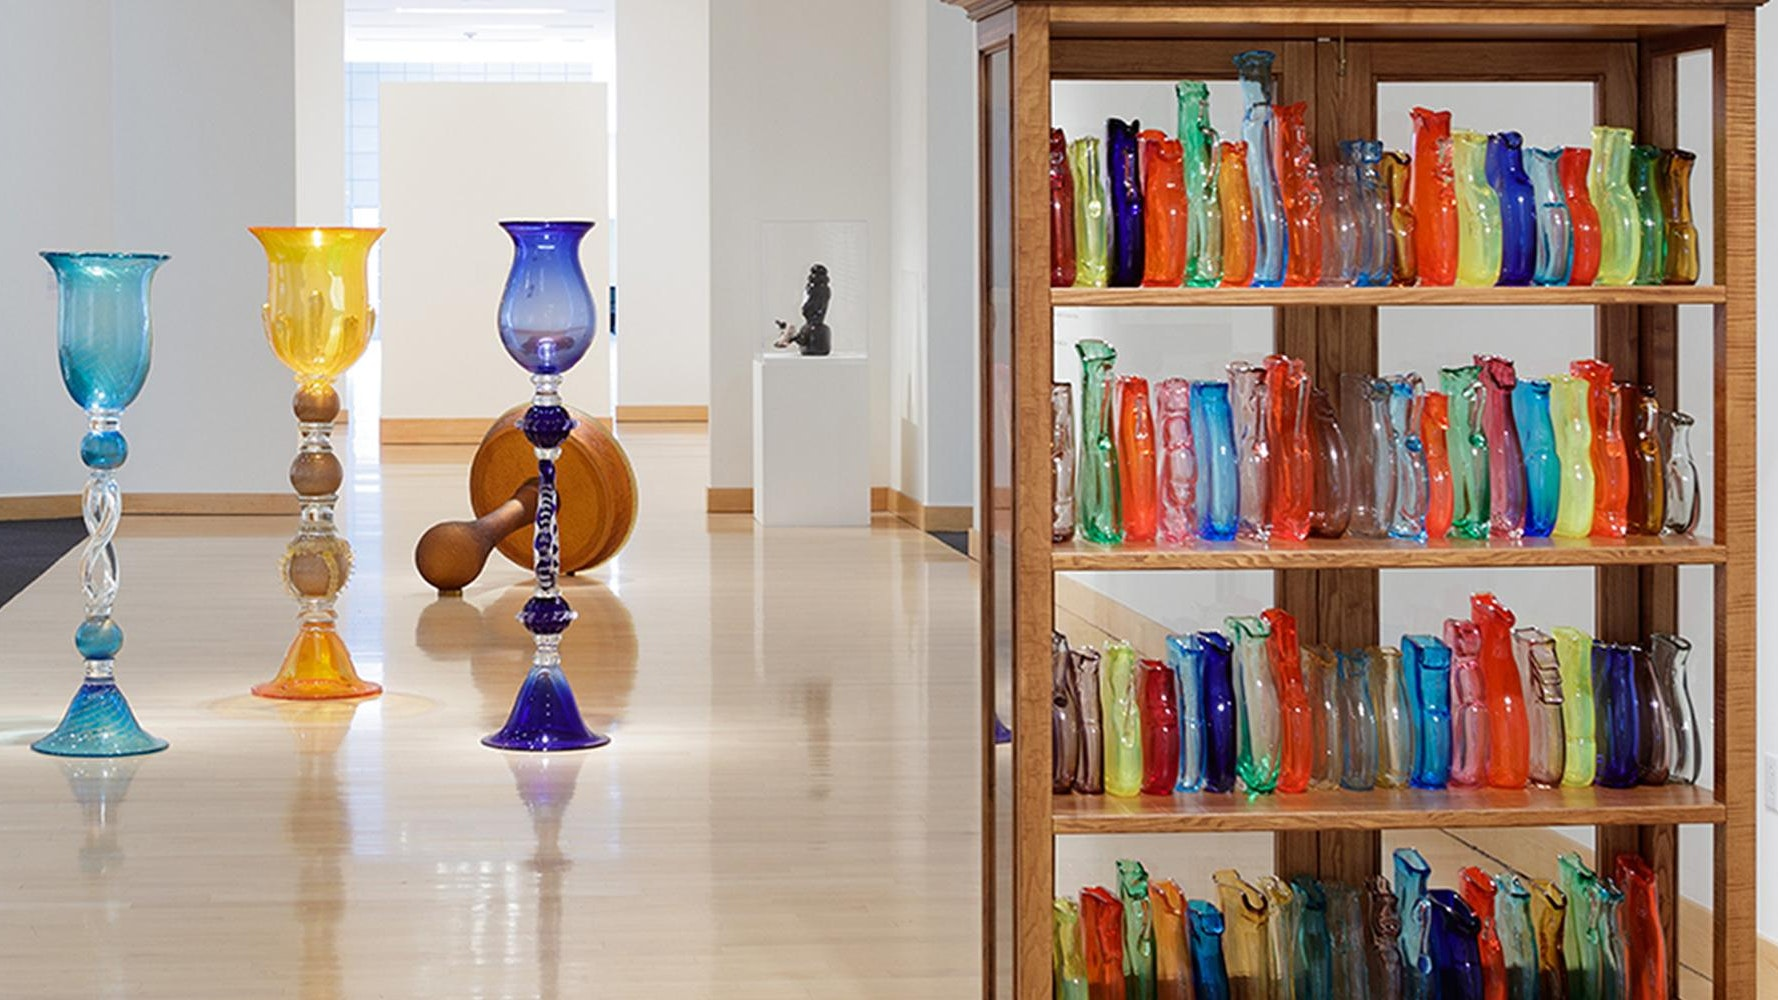 Room in a museum filled with colorful glass artwork of different sizes